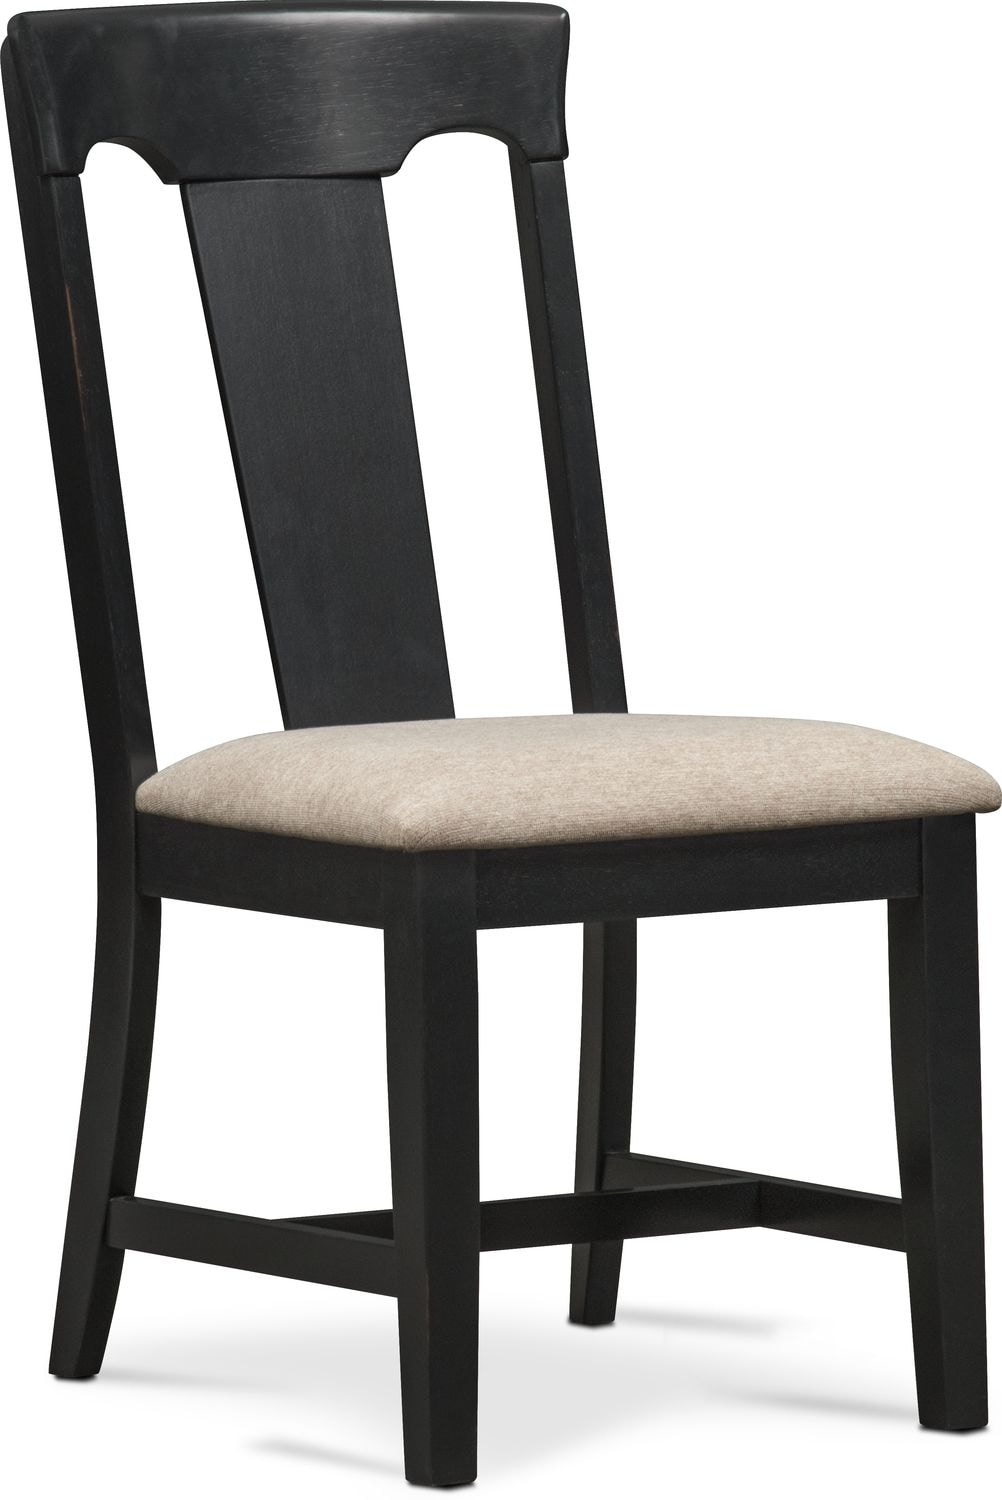 Dining Room Furniture   Adler Side Chair   Black